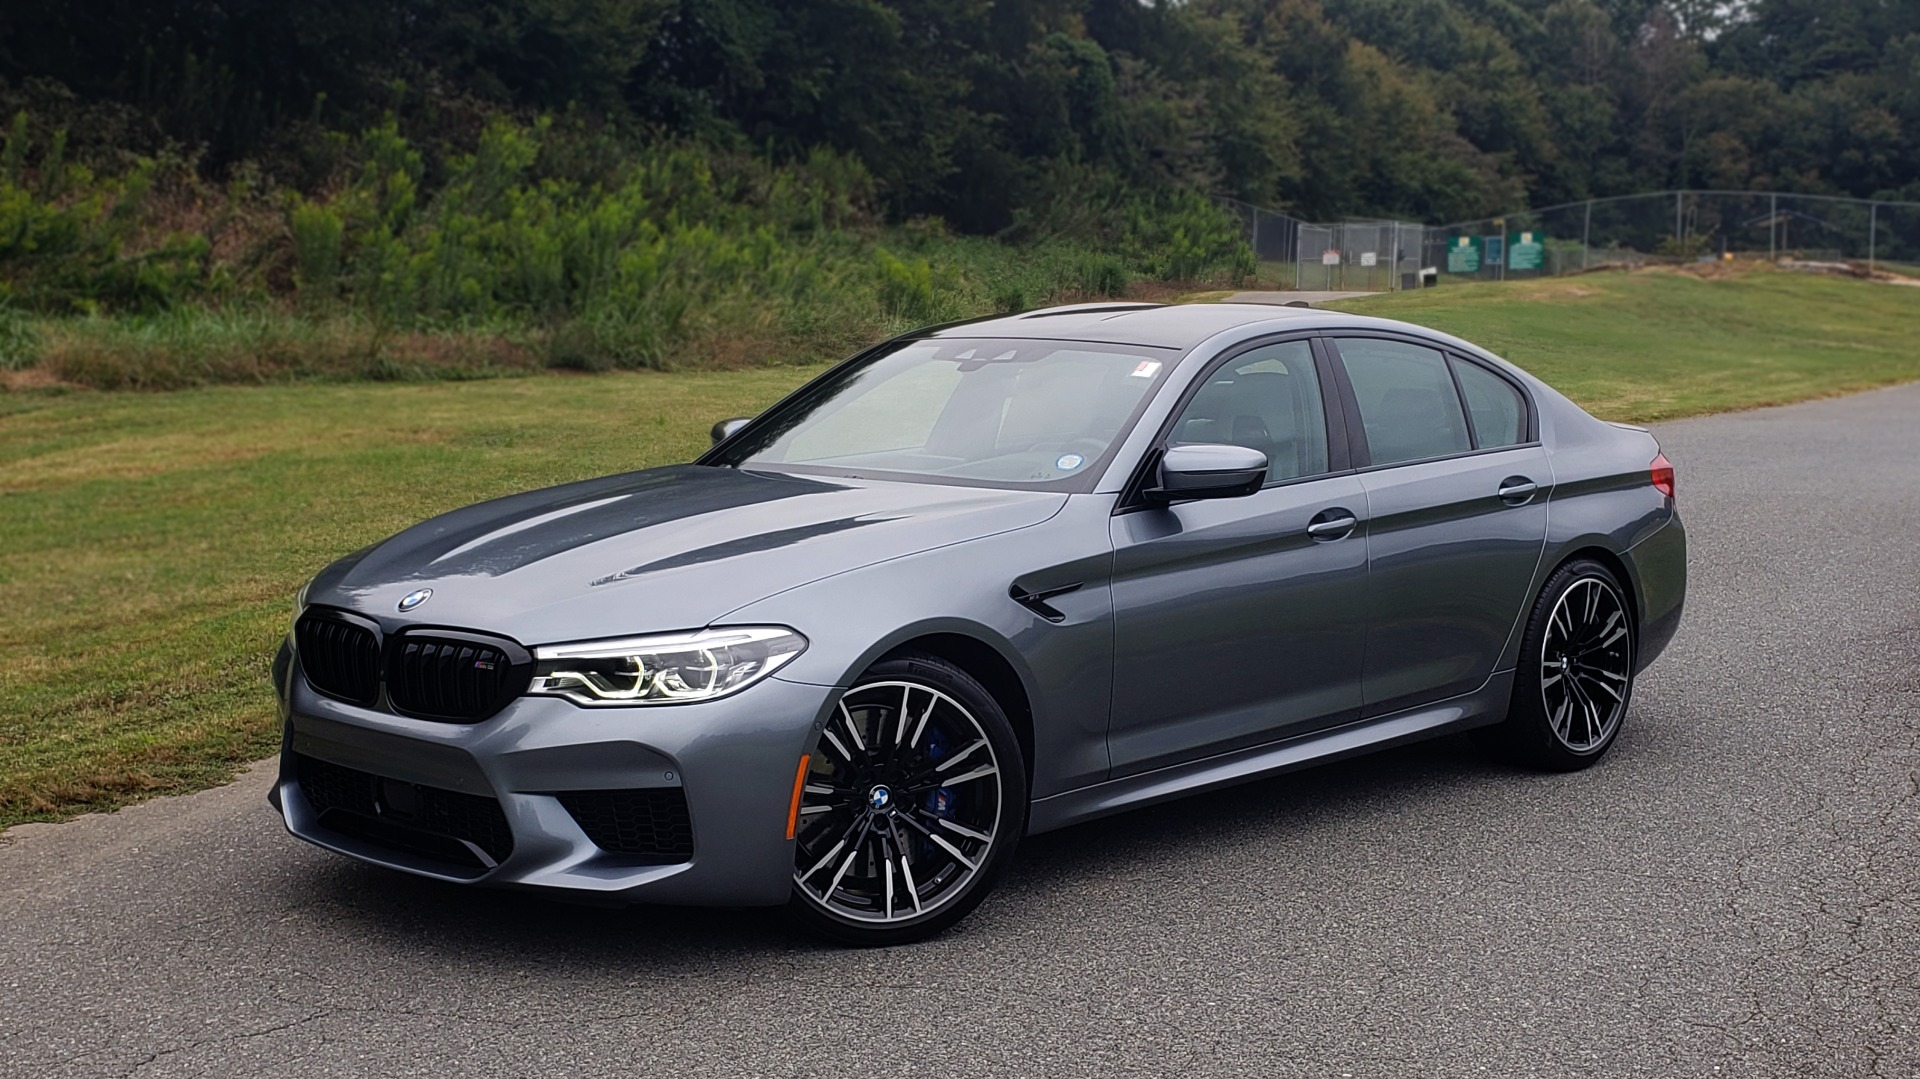 Used 2019 BMW M5 EXEC PKG / DRVR ASST PLUS / B&W SOUND / NAV / REARVIEW for sale Sold at Formula Imports in Charlotte NC 28227 7